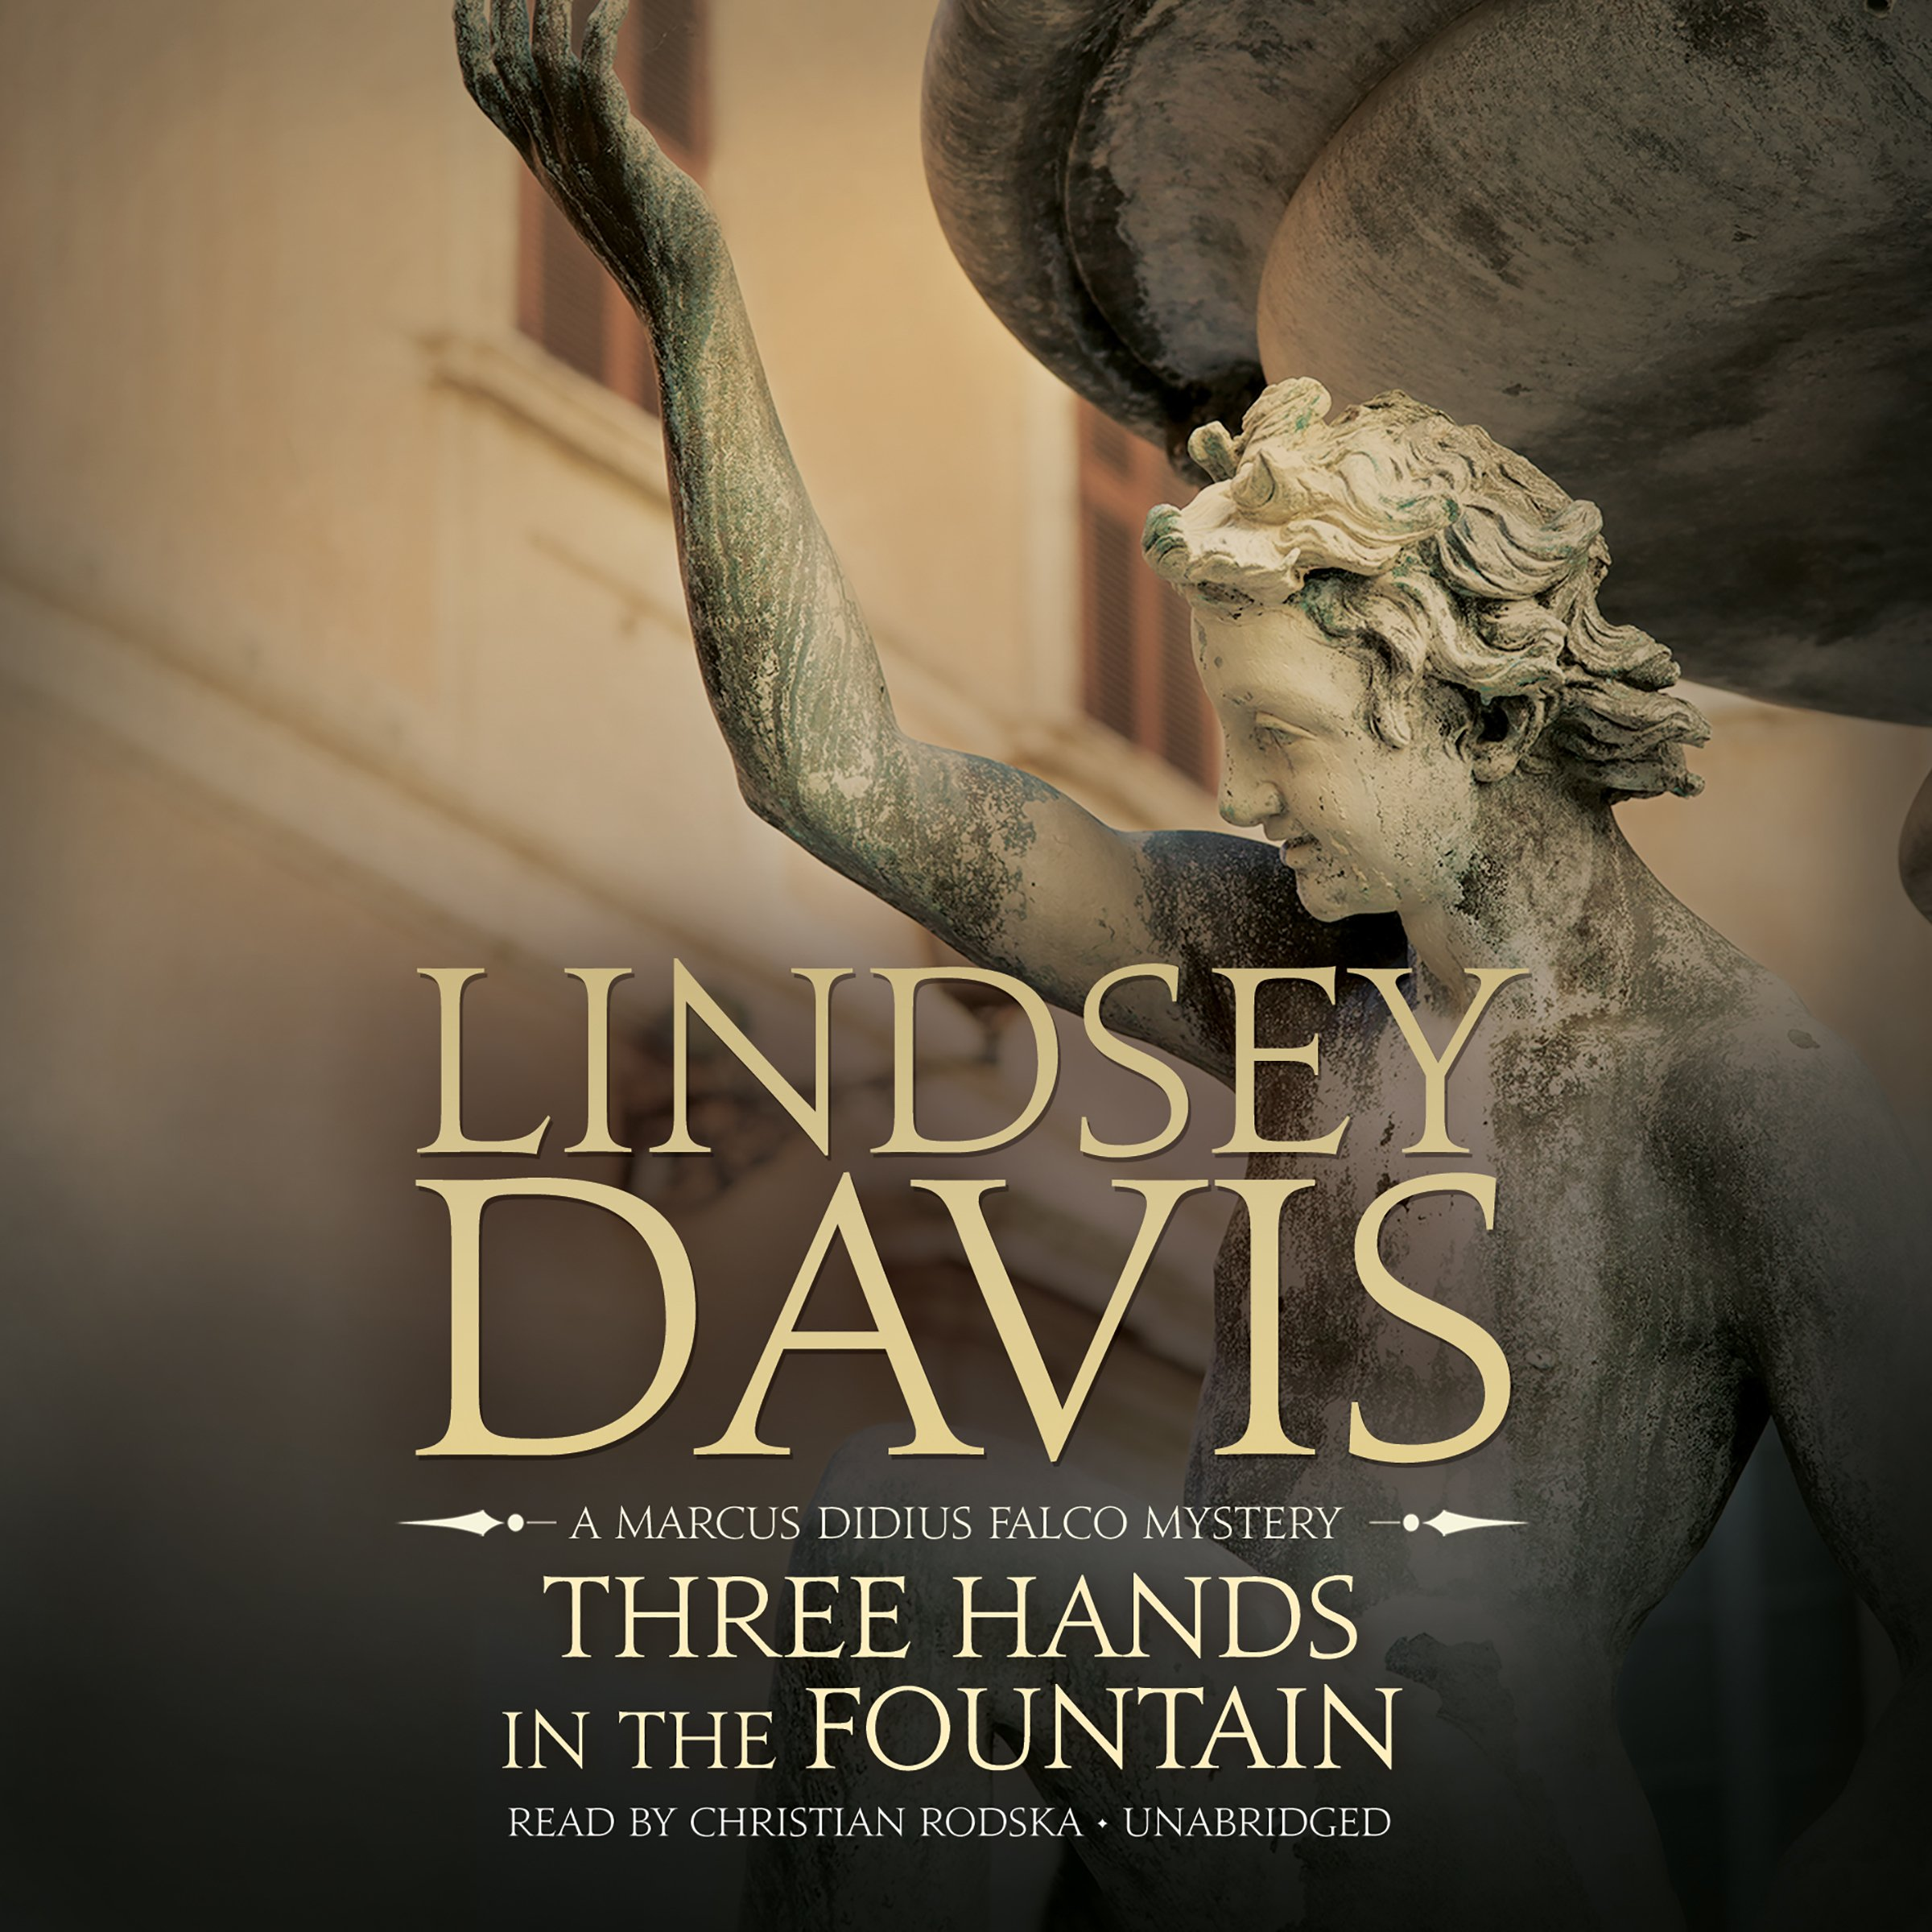 Amazon.com: Three Hands in the Fountain: A Marcus Didius Falco Mystery  (Marcus Didius Falco Mysteries, Book 9) (9781609981679): Lindsey Davis, ...